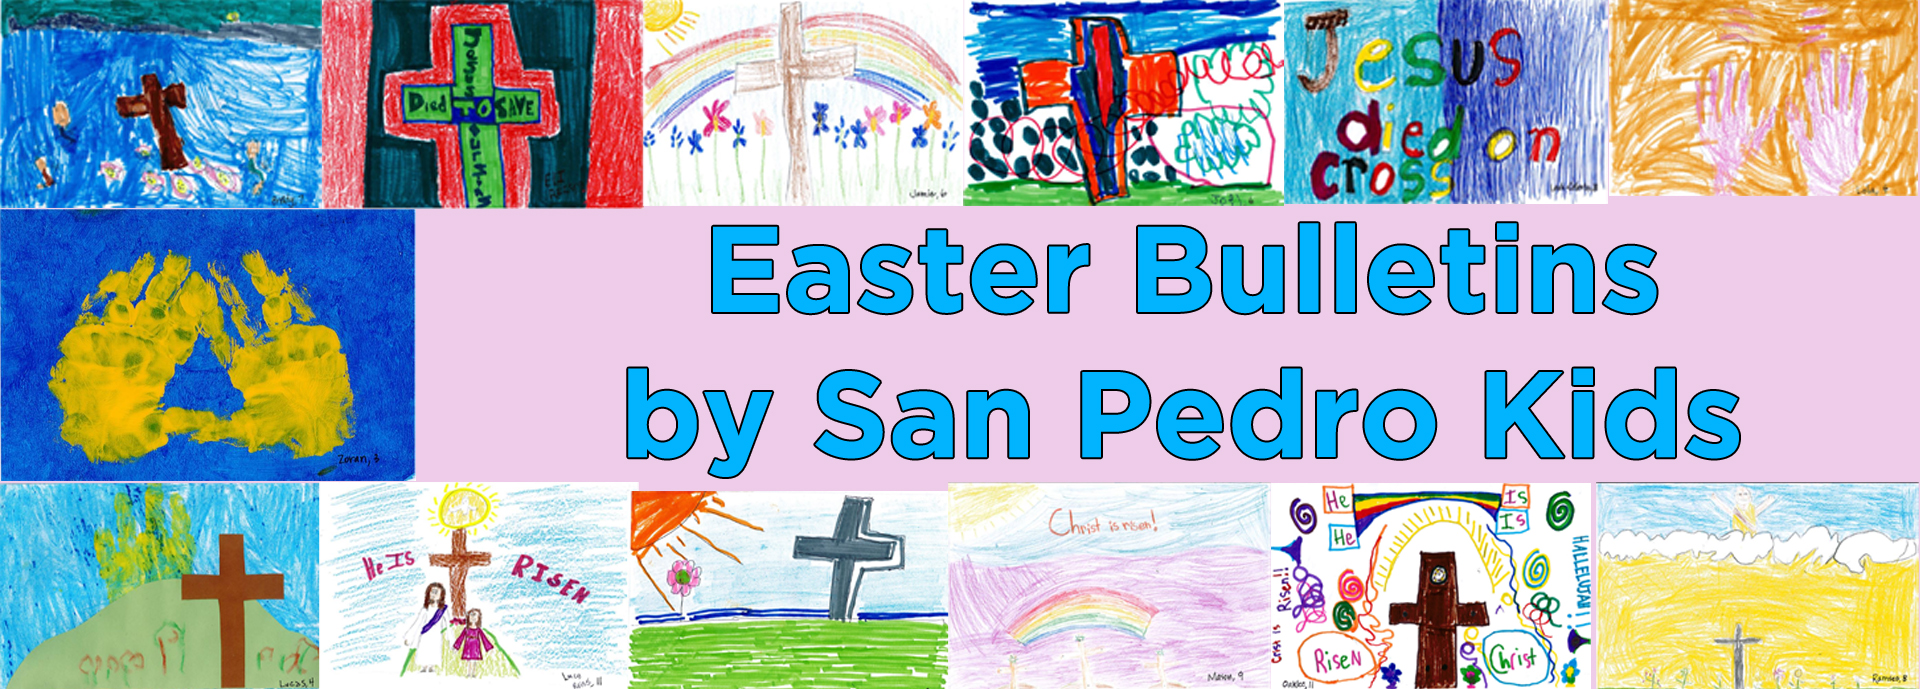 Easter bulletins webpage header